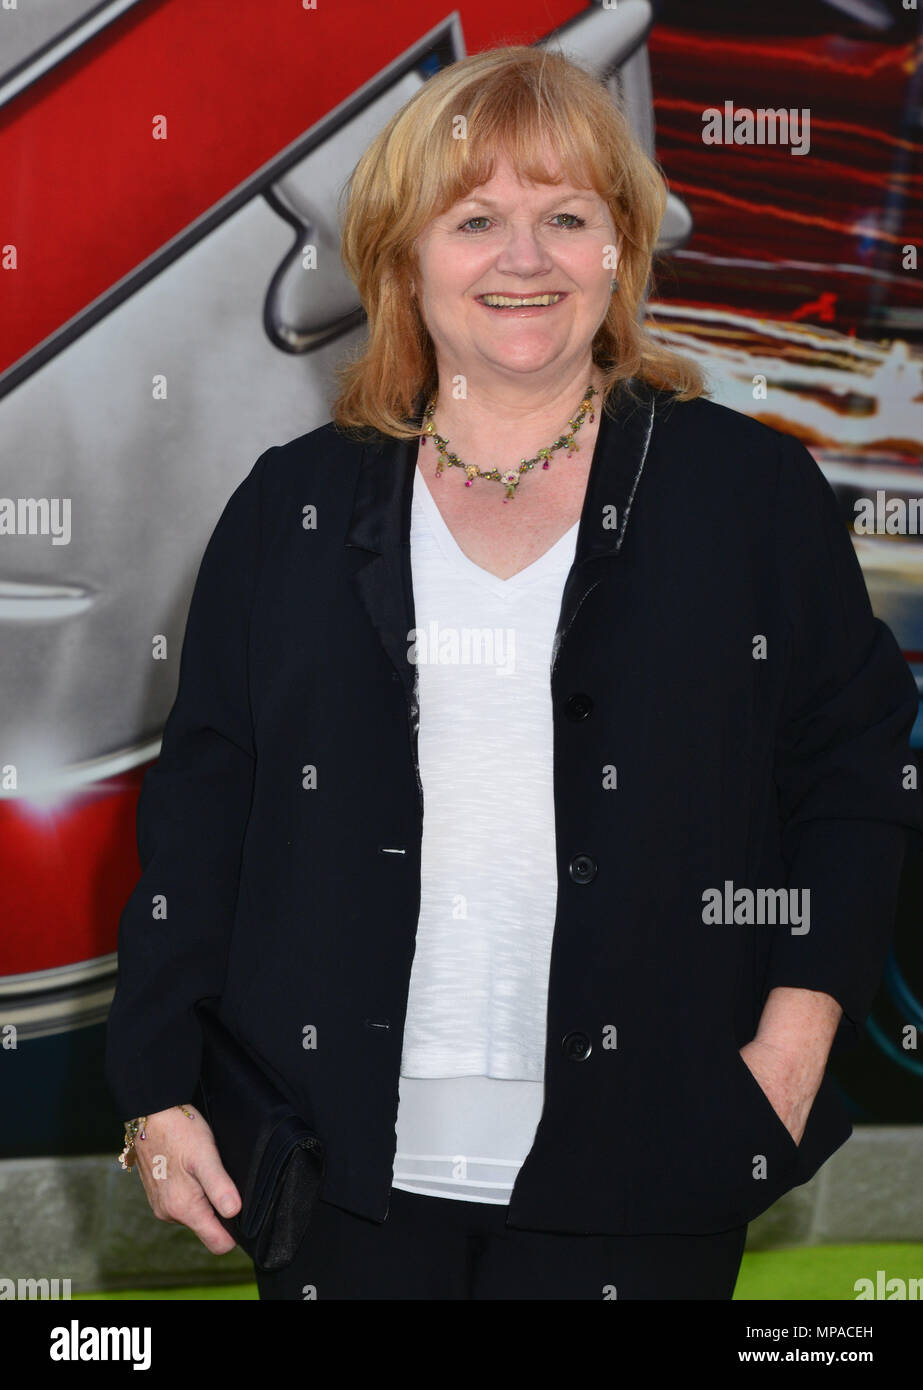 Lesley Nicol at the  Sony Pictures Ghostbusters Premiere at TCL Chinese Theatre in Los Angeles. July 9, 2016. Lesley Nicol ------------- Red Carpet Event, Vertical, USA, Film Industry, Celebrities,  Photography, Bestof, Arts Culture and Entertainment, Topix Celebrities fashion /  Vertical, Best of, Event in Hollywood Life - California,  Red Carpet and backstage, USA, Film Industry, Celebrities,  movie celebrities, TV celebrities, Music celebrities, Photography, Bestof, Arts Culture and Entertainment,  Topix, Three Quarters, vertical, one person,, from the year , 2016, inquiry tsuni@Gamma-USA.c - Stock Image